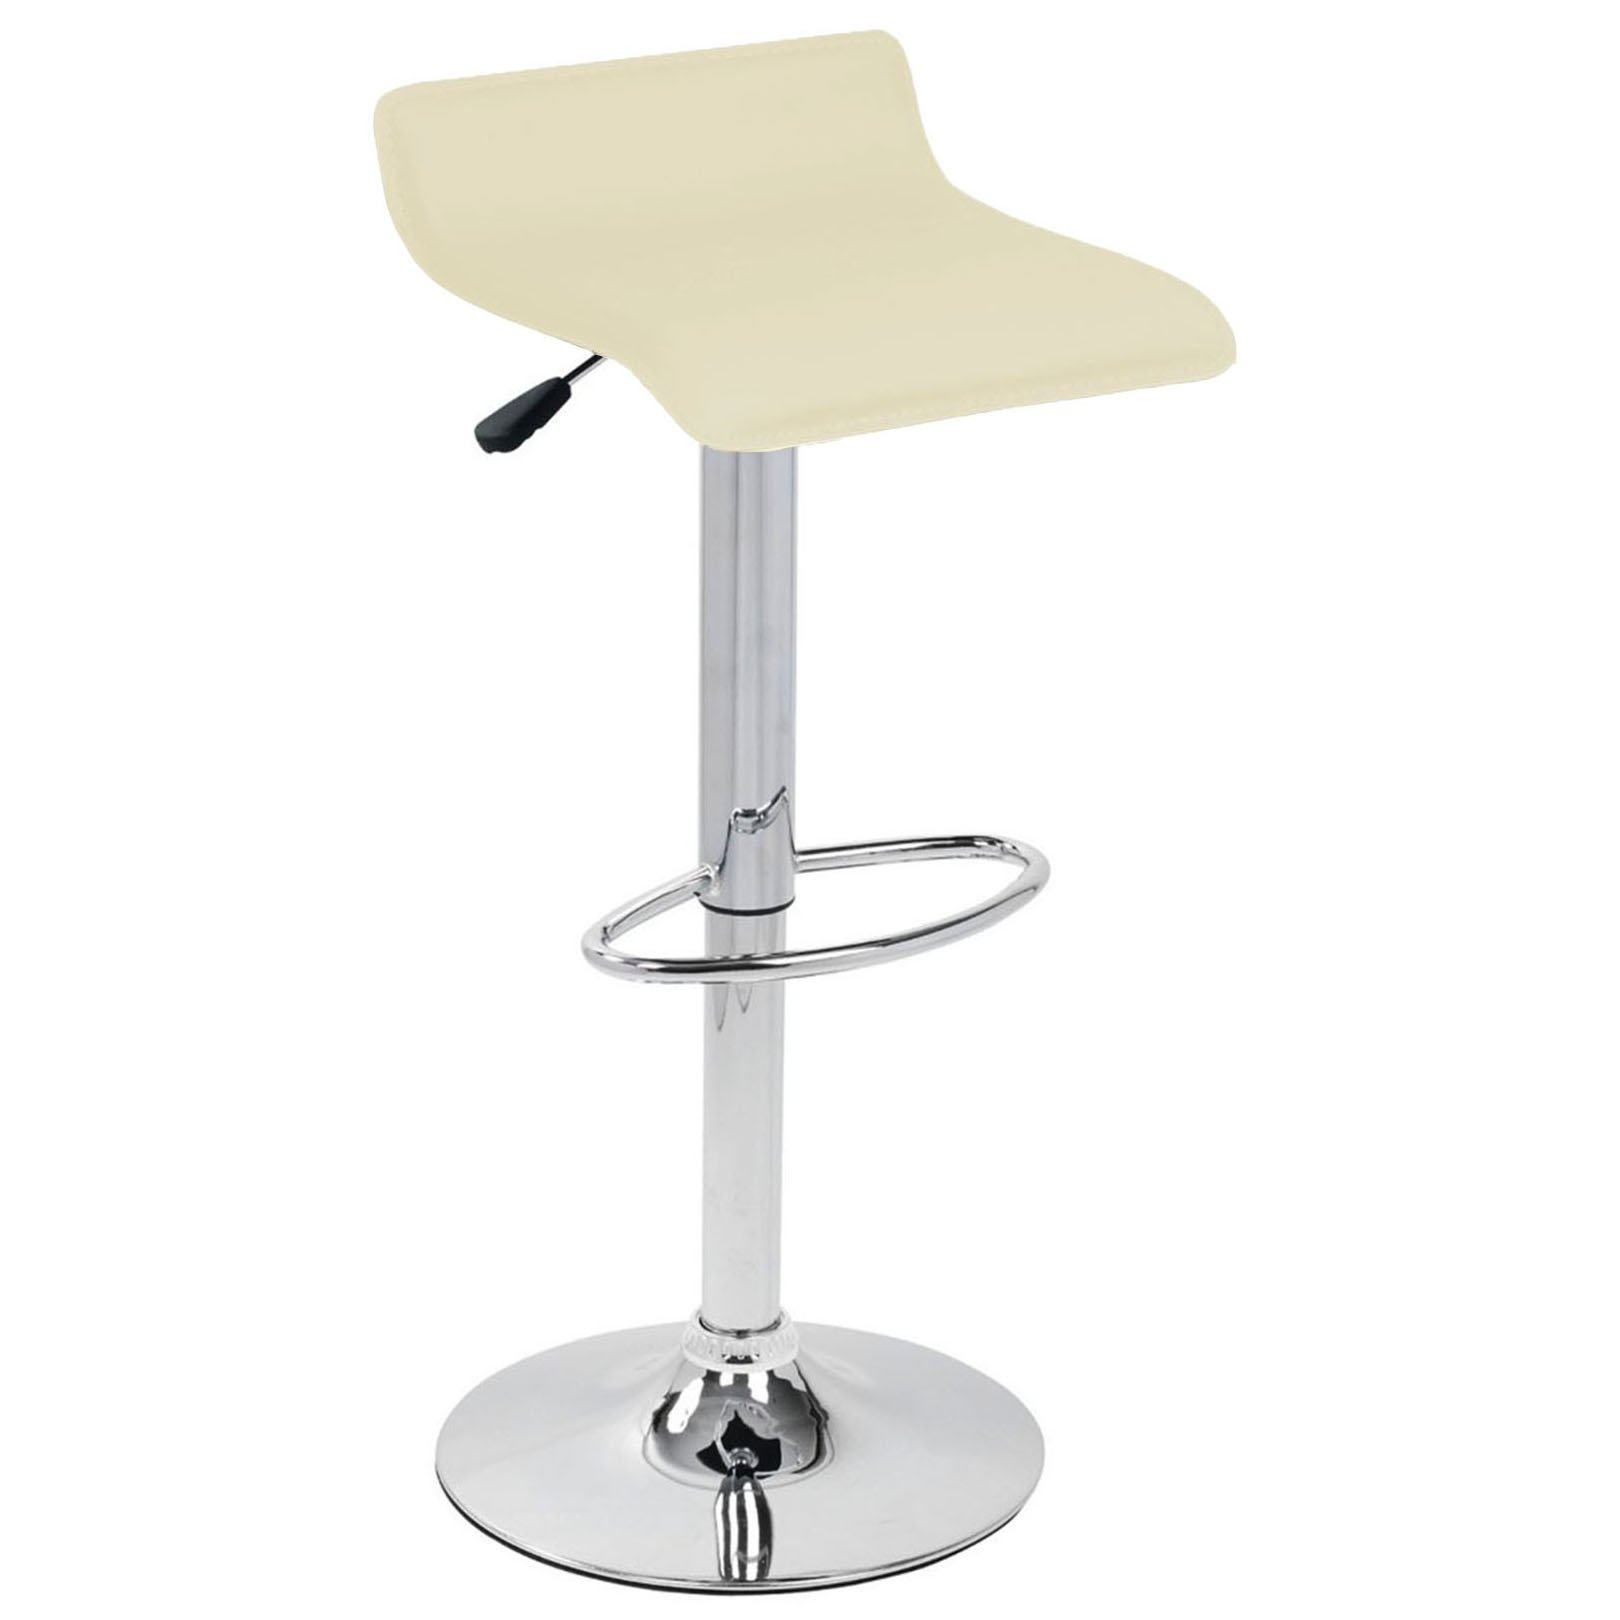 Baceno bar stool cream